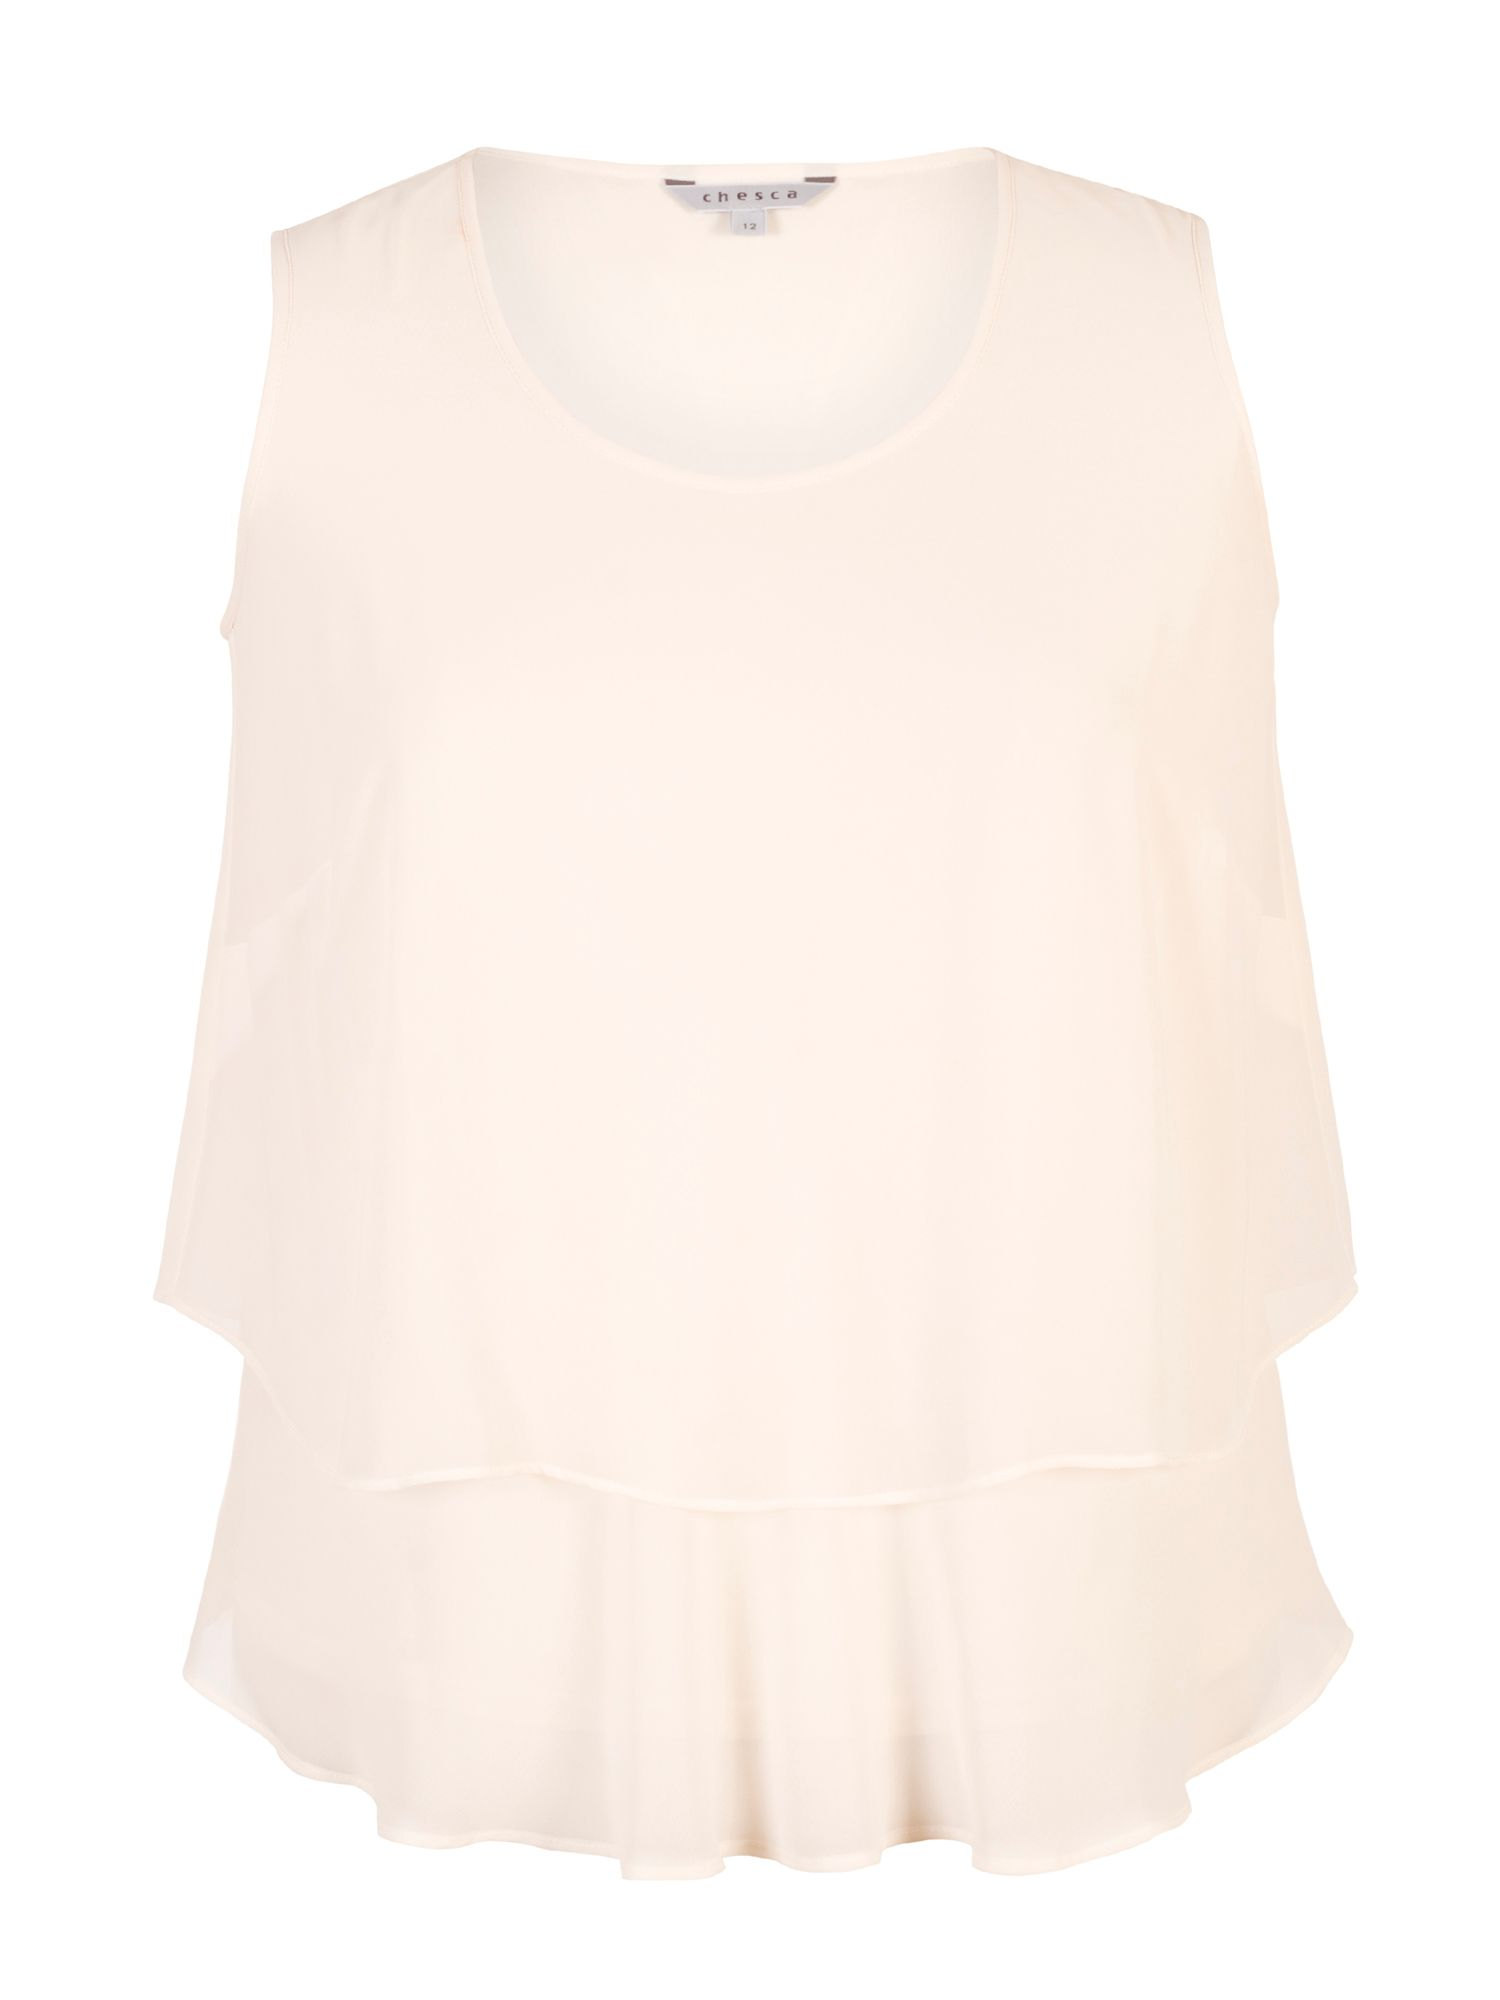 Chesca Wrap Back Layered Chiffon Top, Cream